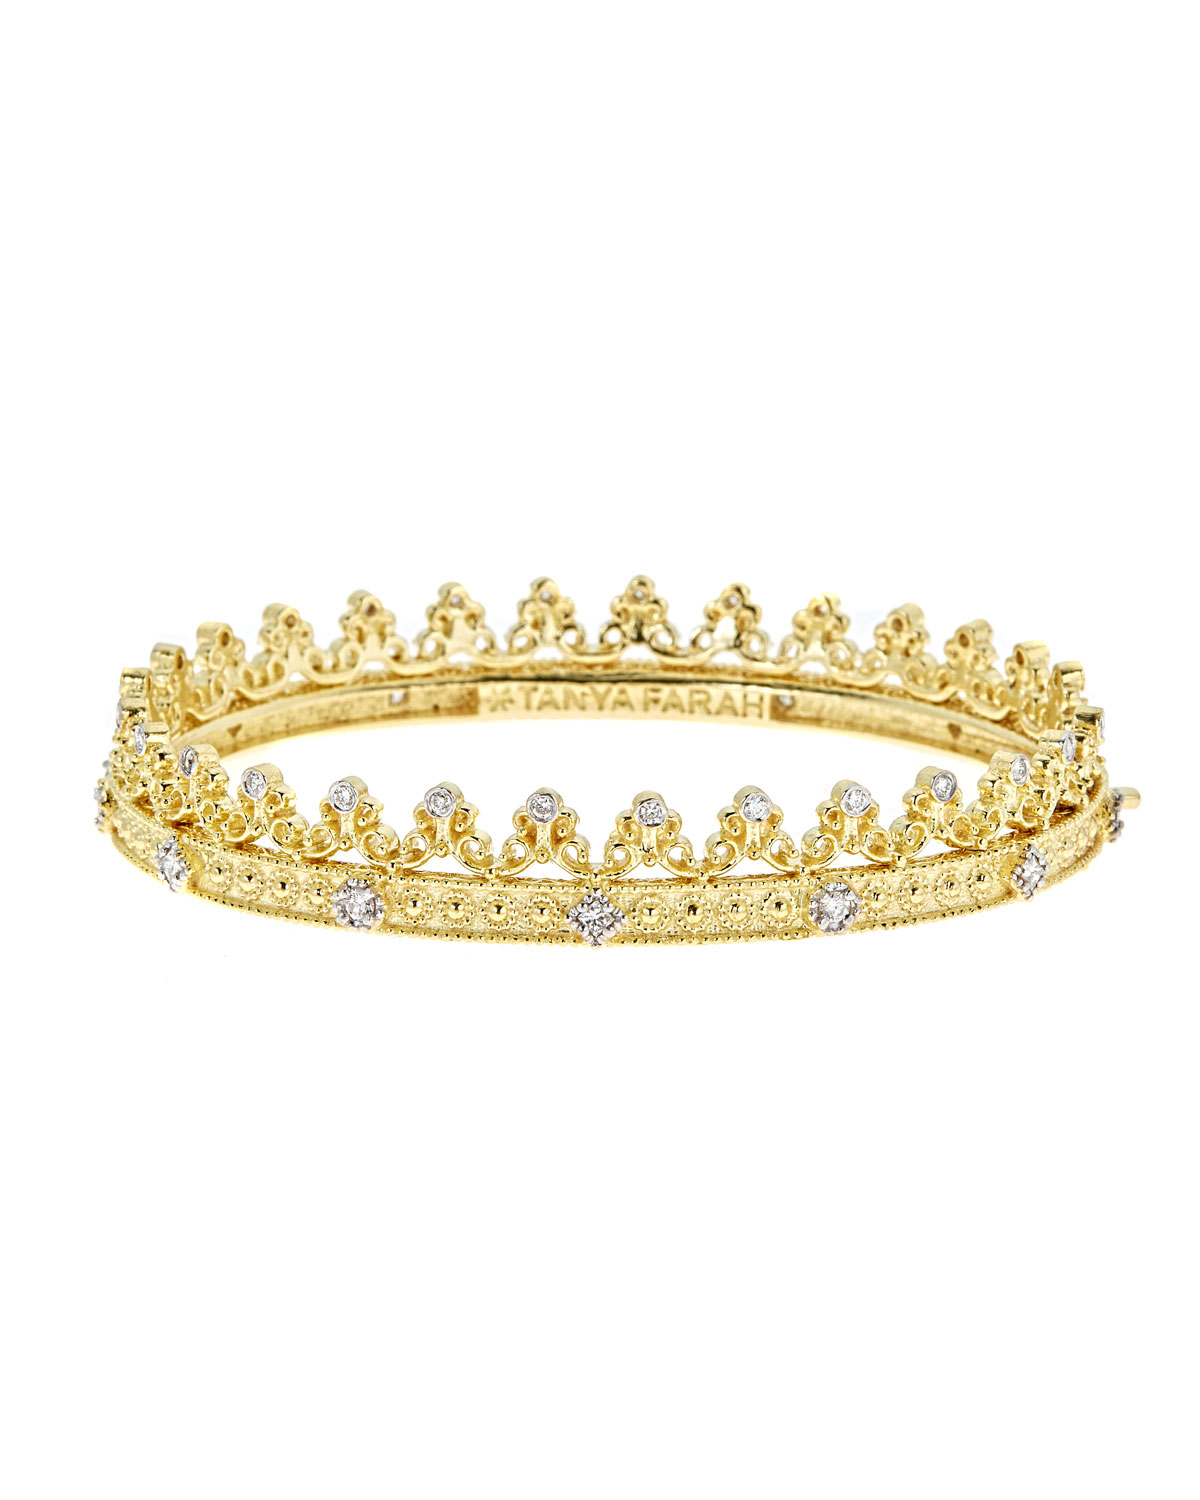 TANYA FARAH Royal Couture 18K Gold Scroll Crown Bangle With Diamonds, 0.75Tdcw